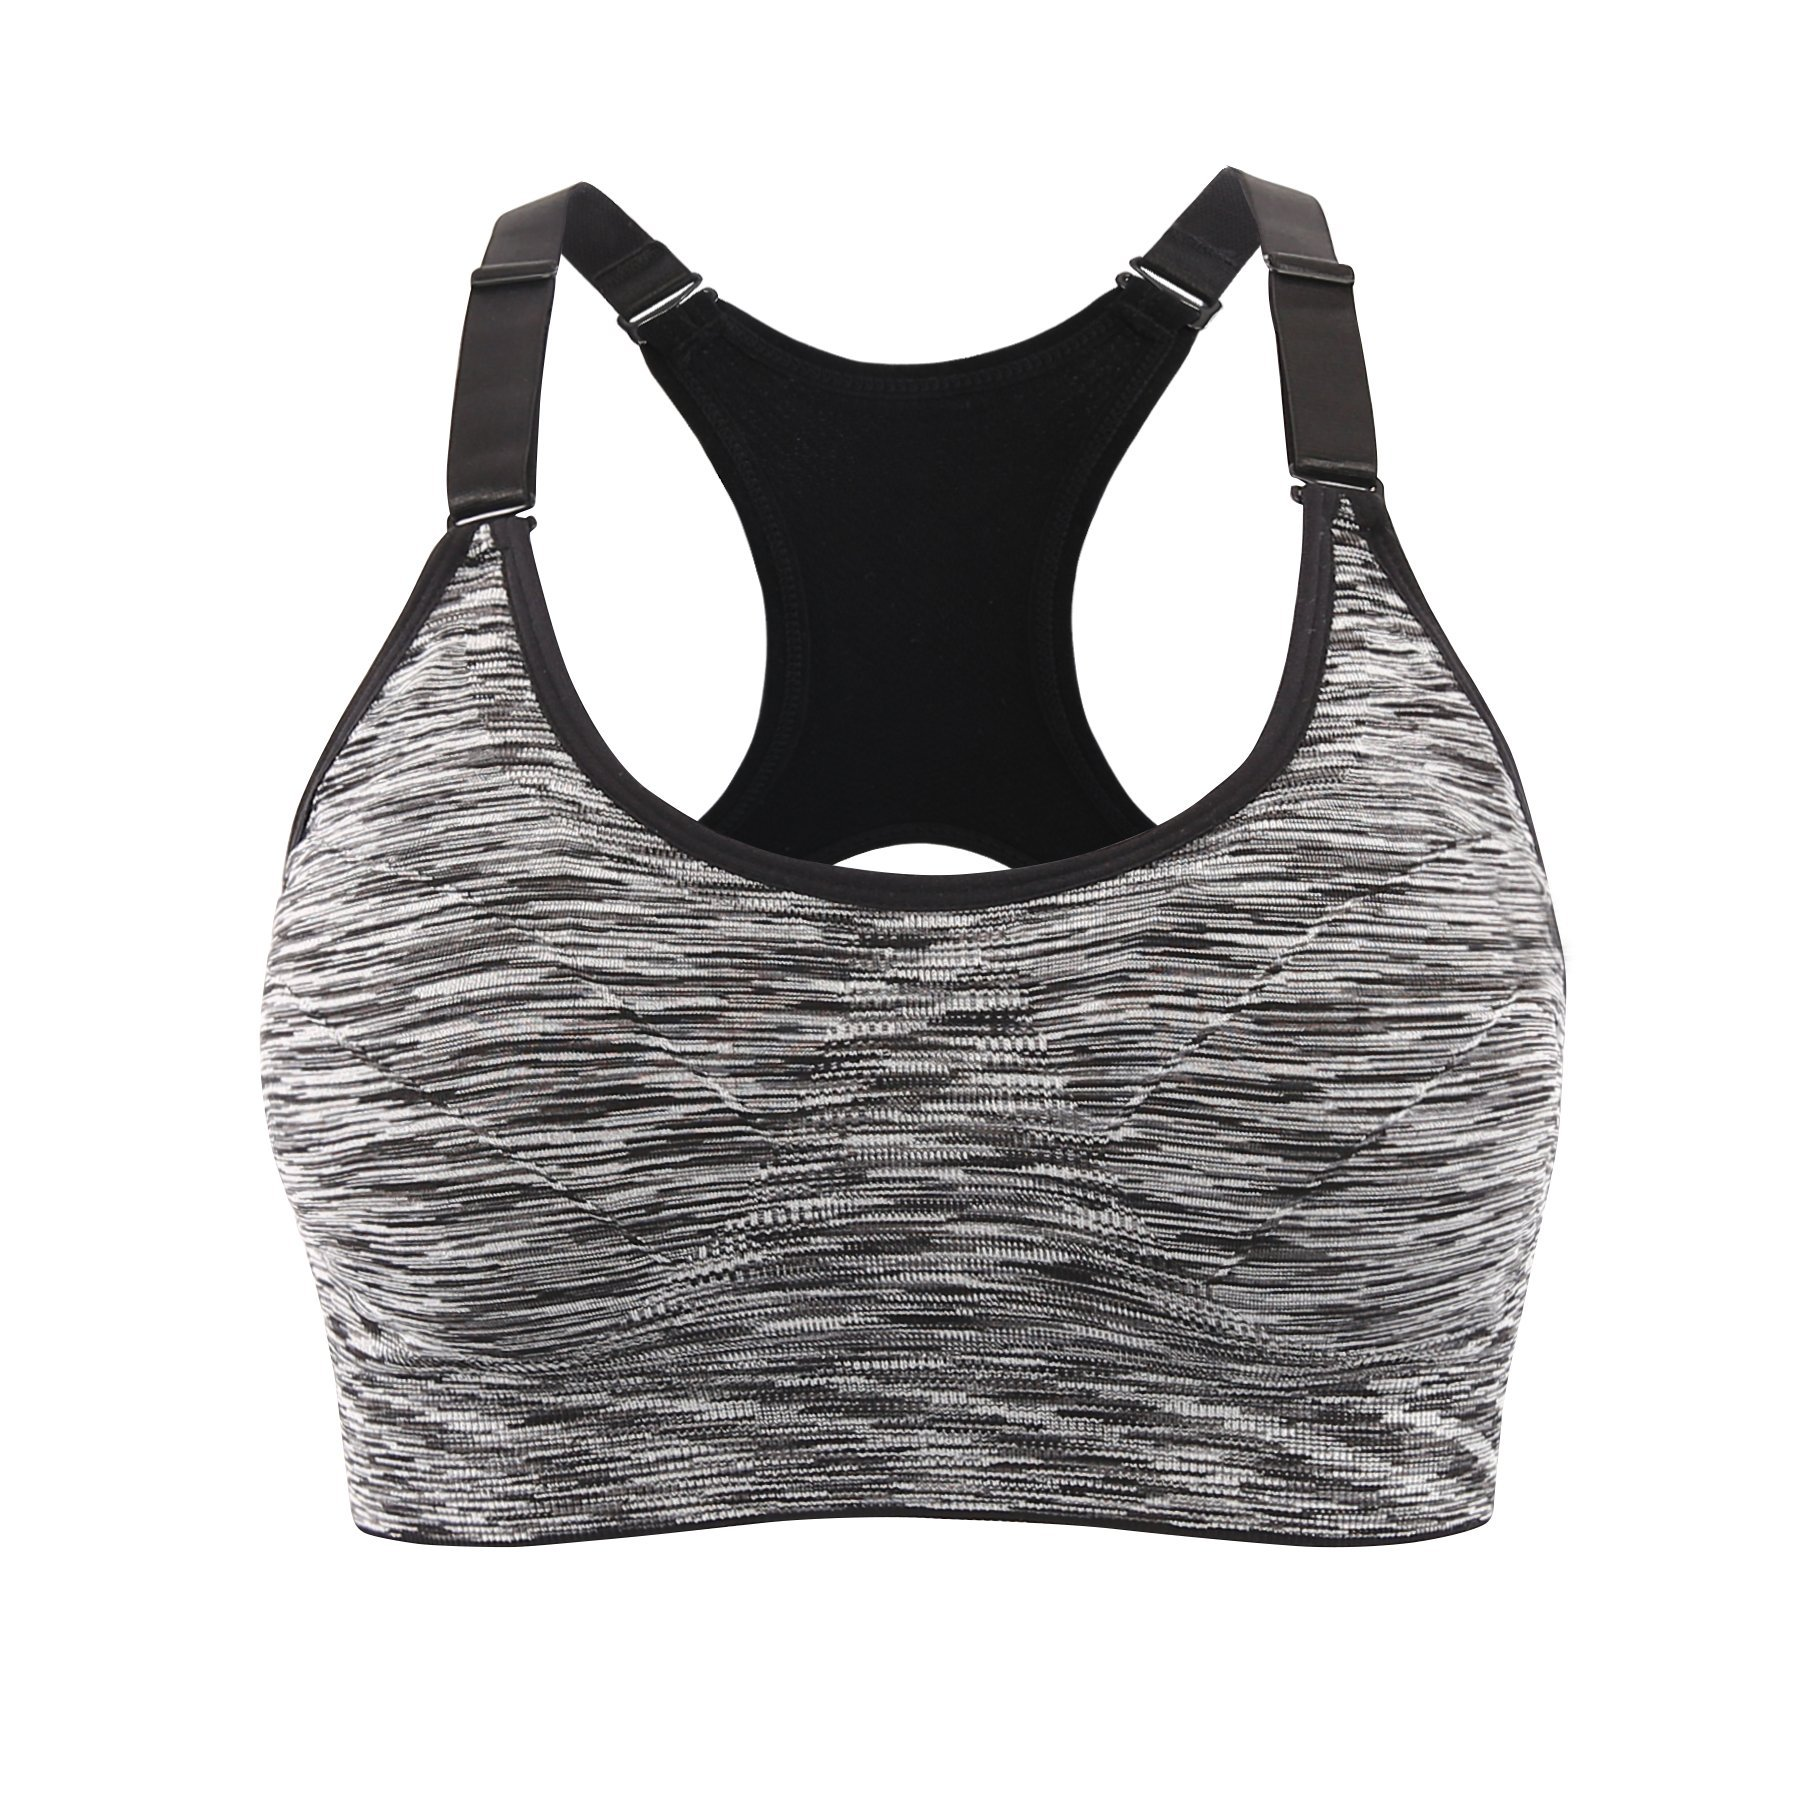 EMY Sports Bra Cami Space Dye Seamless Wirefree Stretchy Removable Pads for Fitness Gym Yoga Running (S, Black Marl)